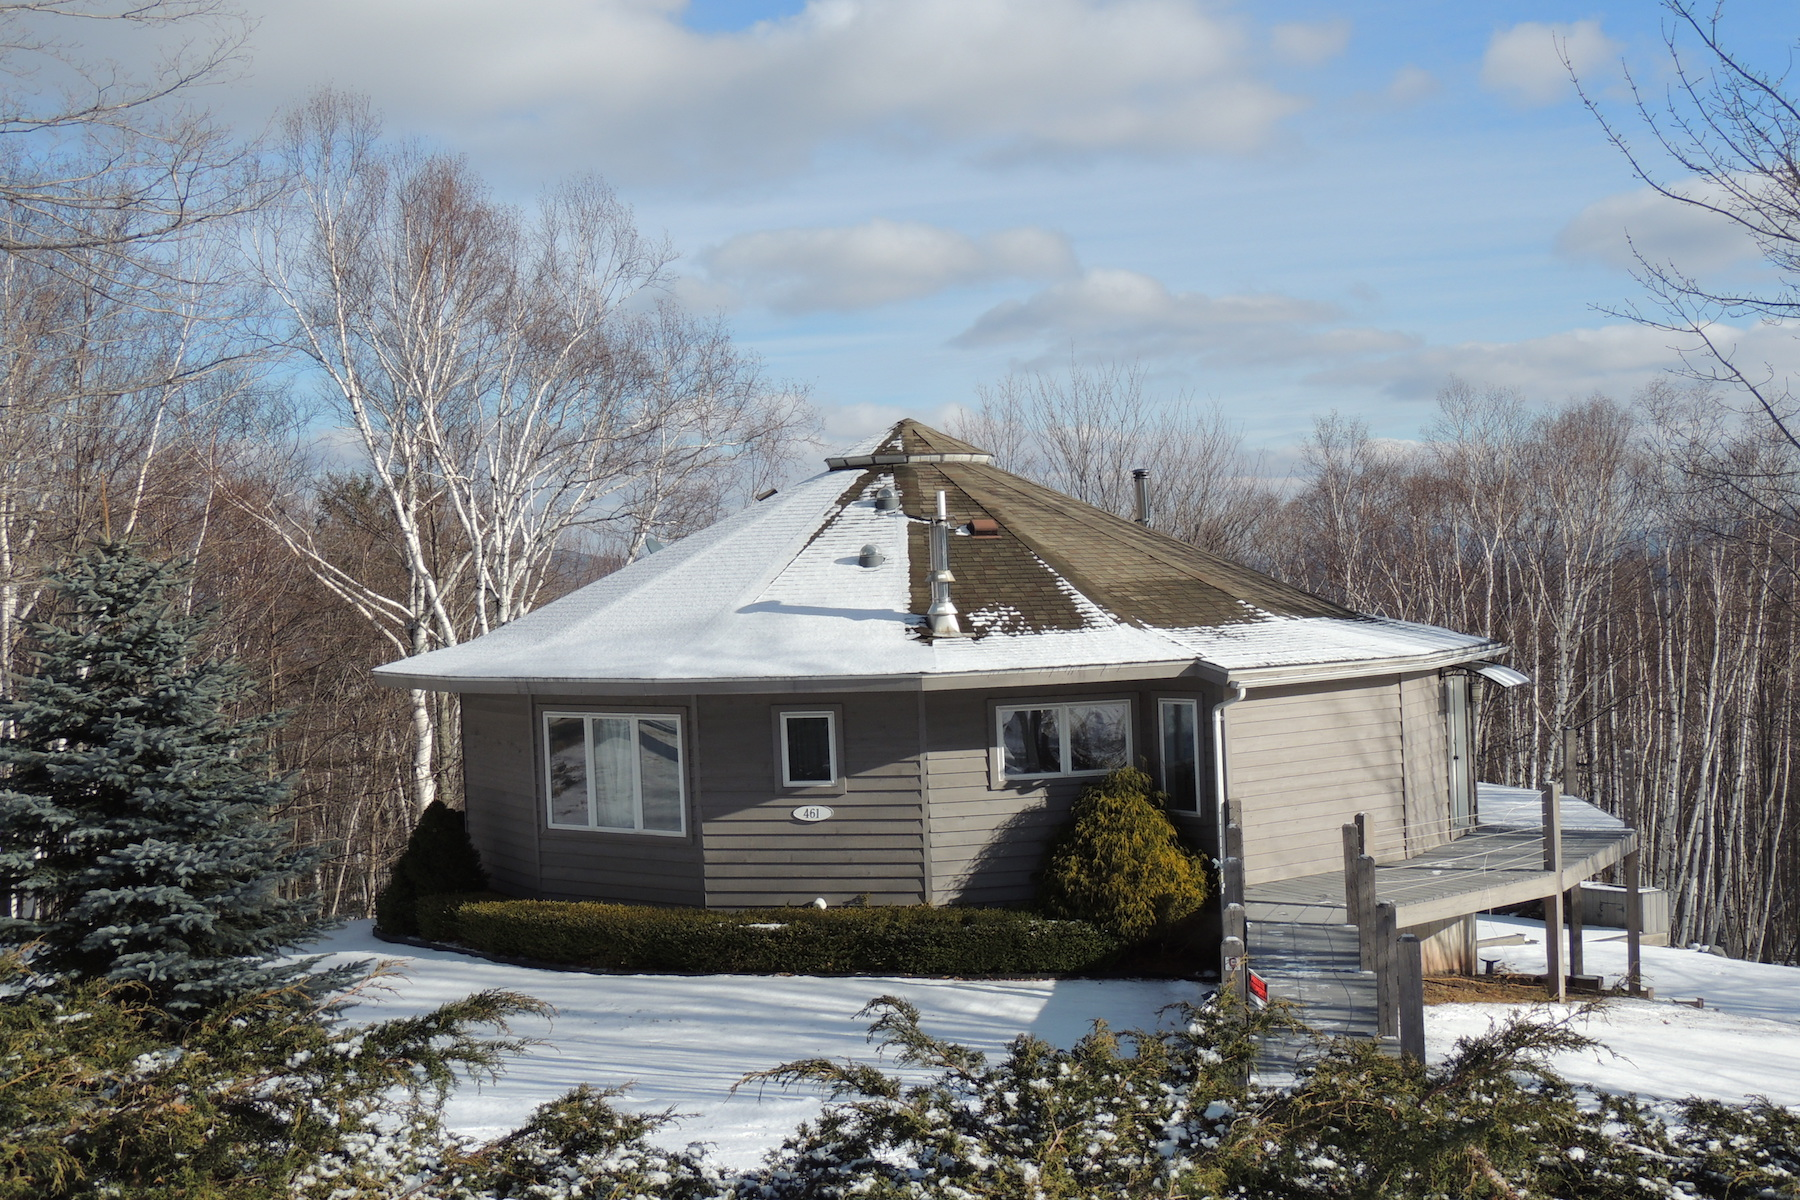 Other Residential for Sale at Round House with Catskill Mountain Views 461 Beshroner Rd Prattsville, New York 12468 United States